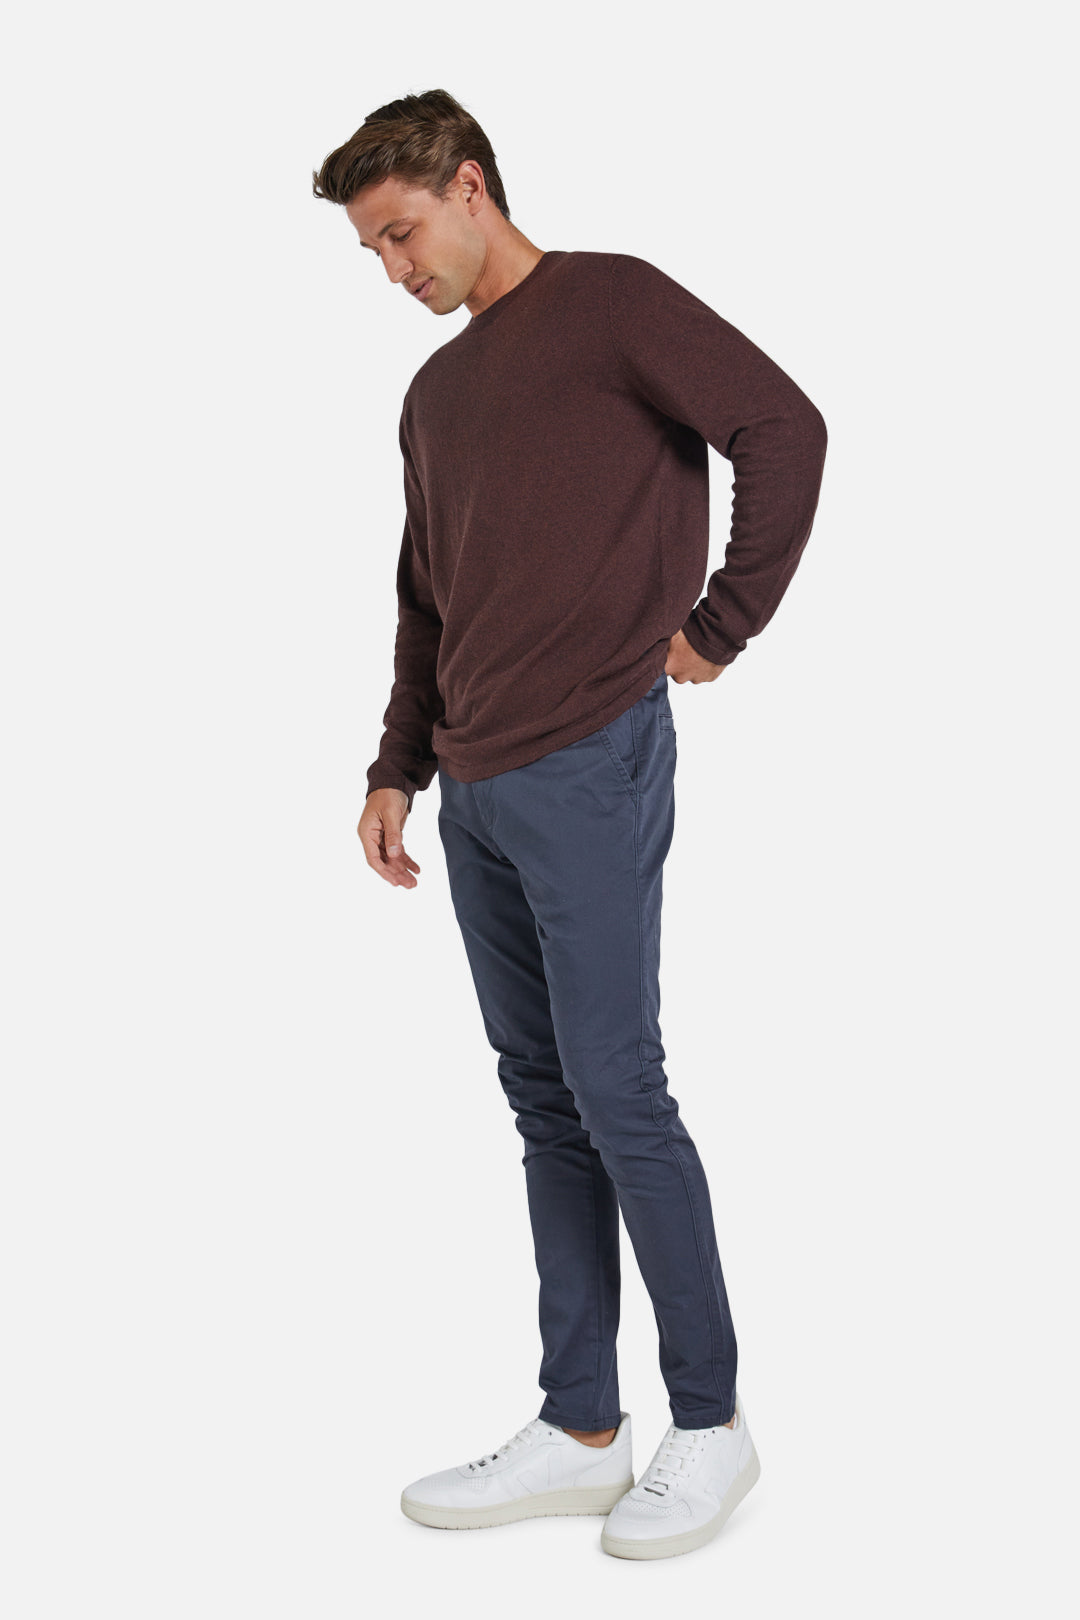 The Cashmere Blend Knit - Ox Blood